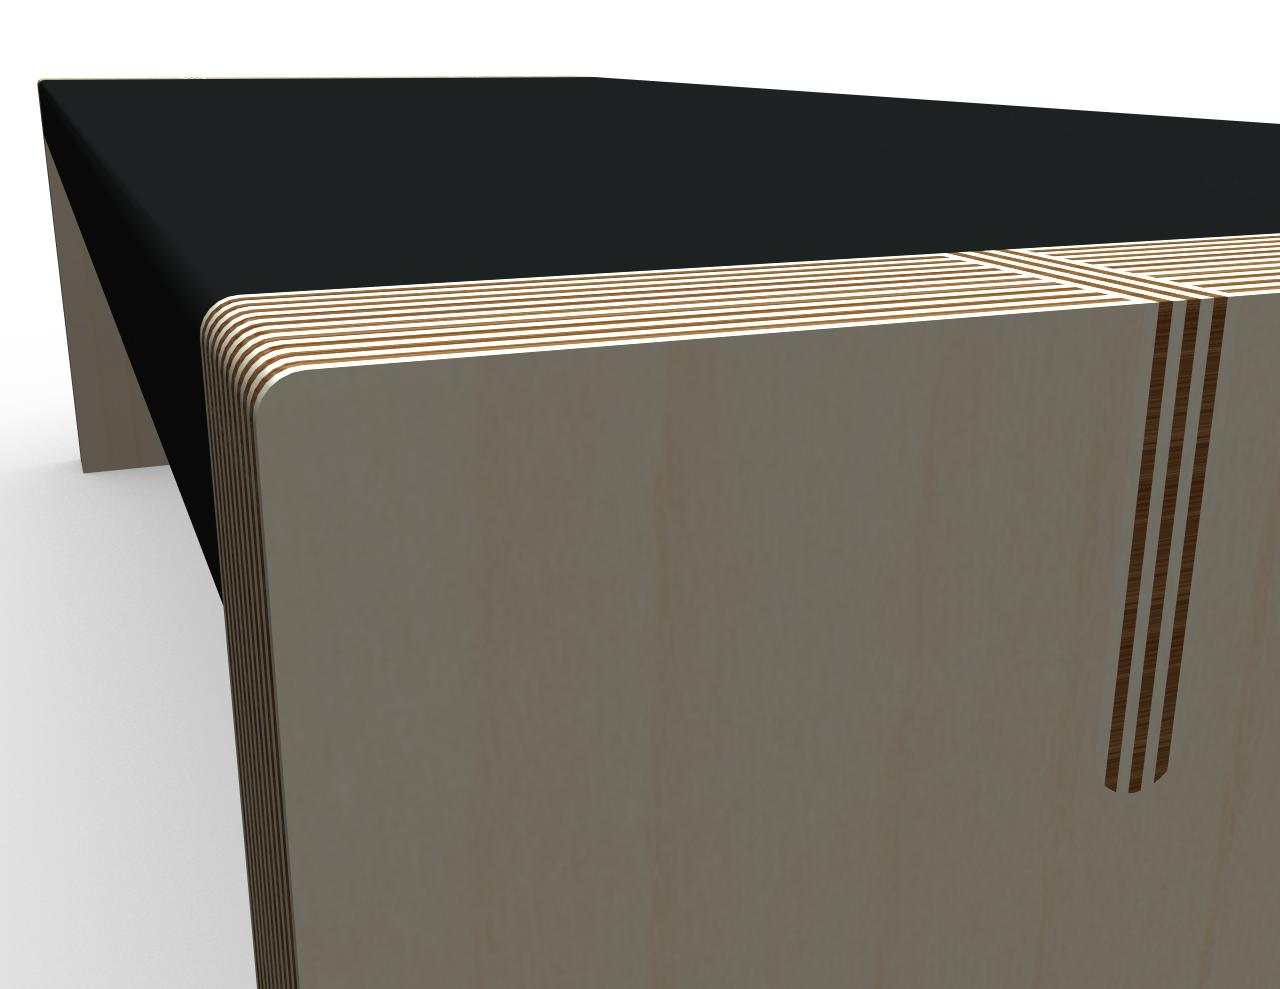 Coffee table detail rendering